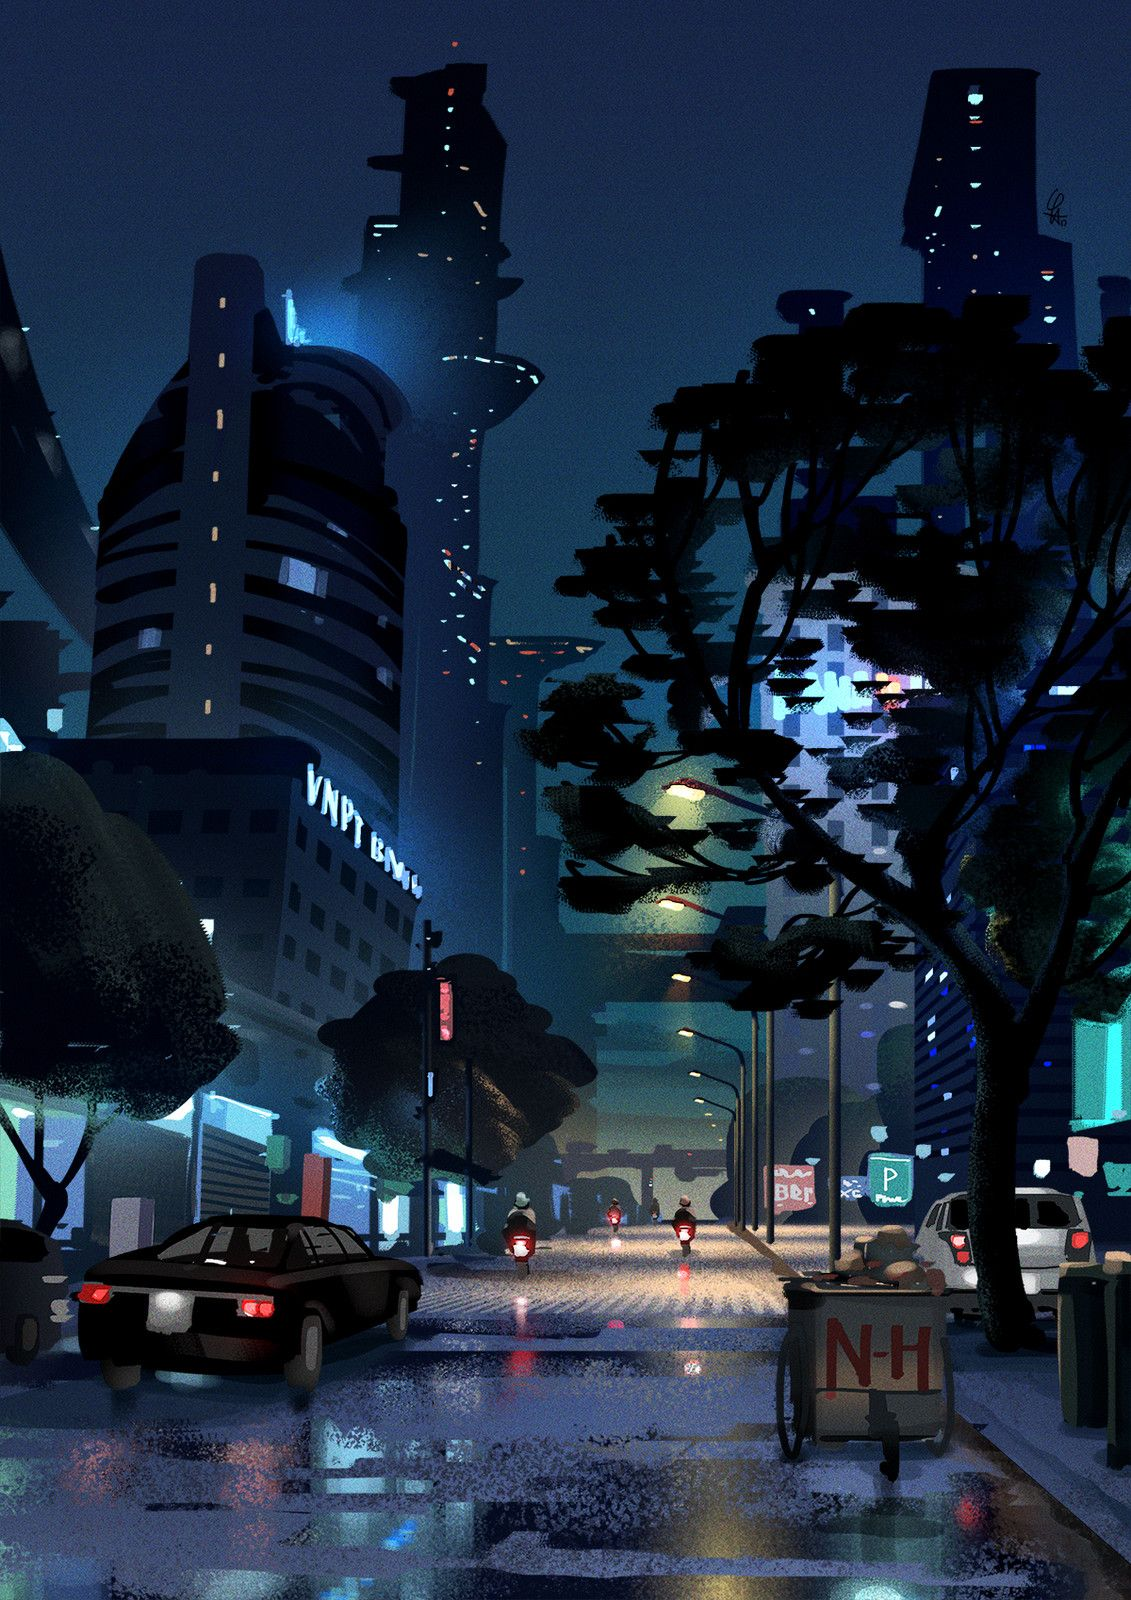 Night Street After Light Shower By Le Long On Artstation Fantasy